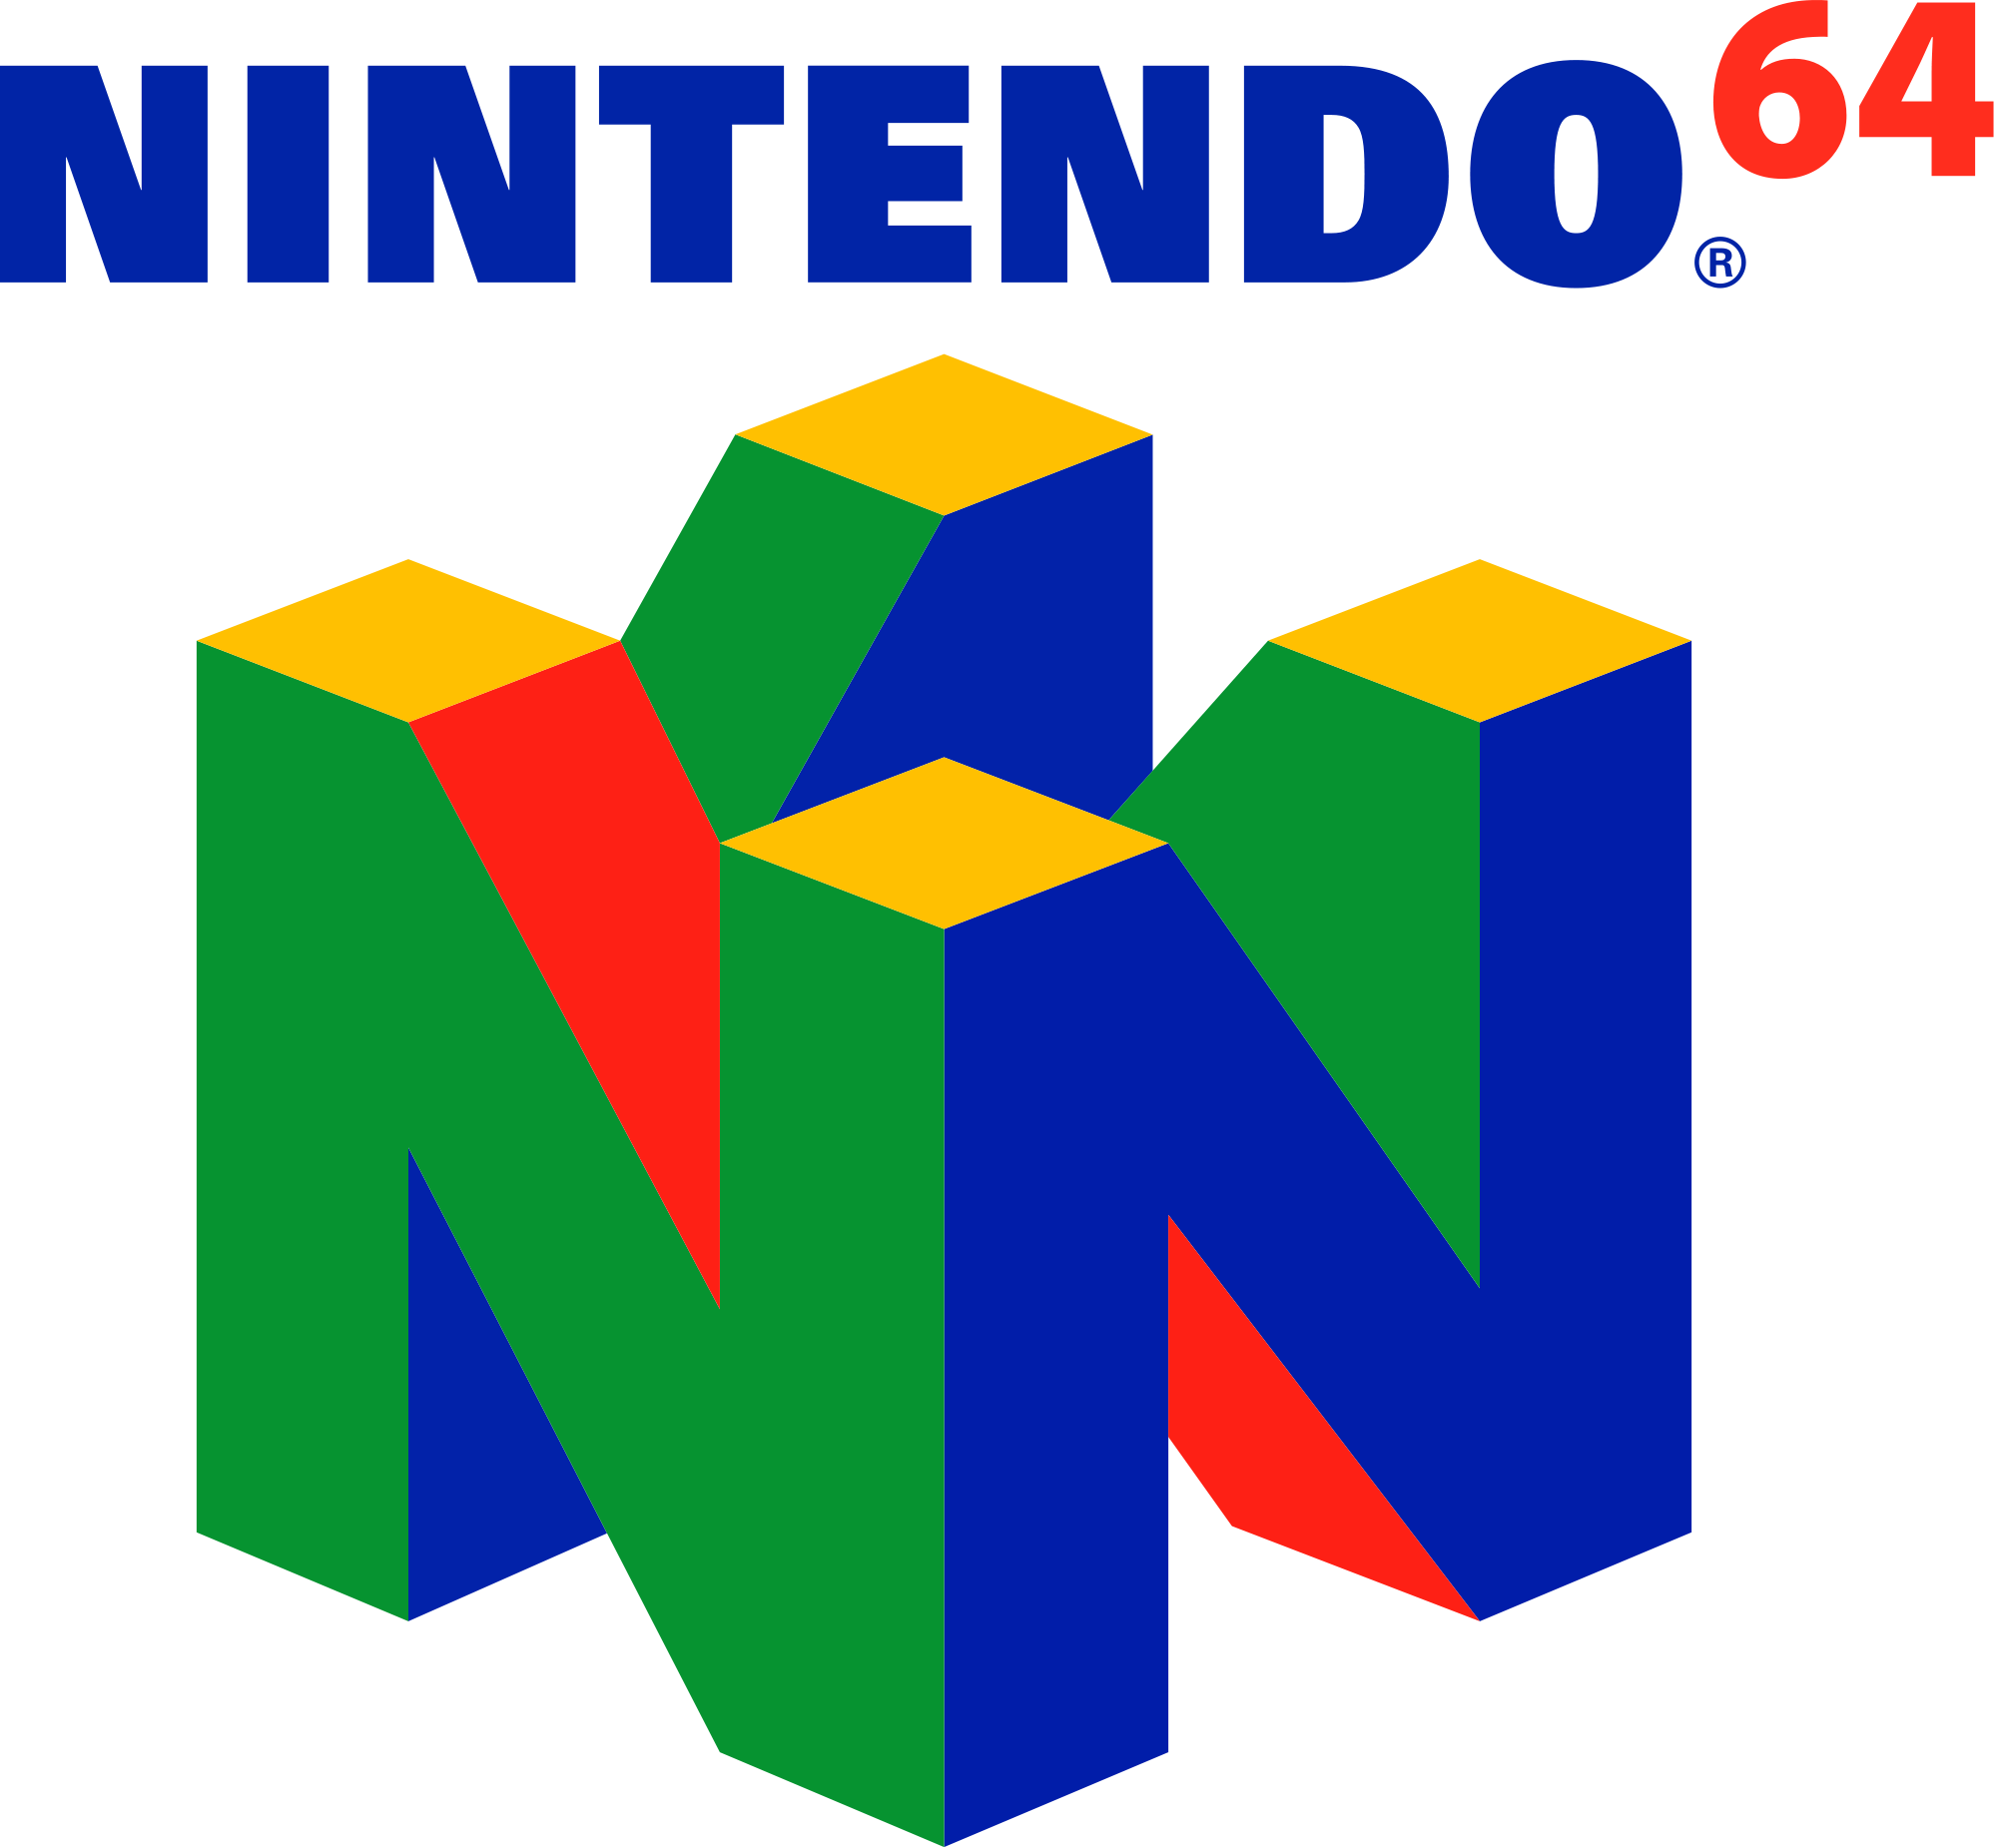 Nintendo 64 logo png. Image fandom powered by